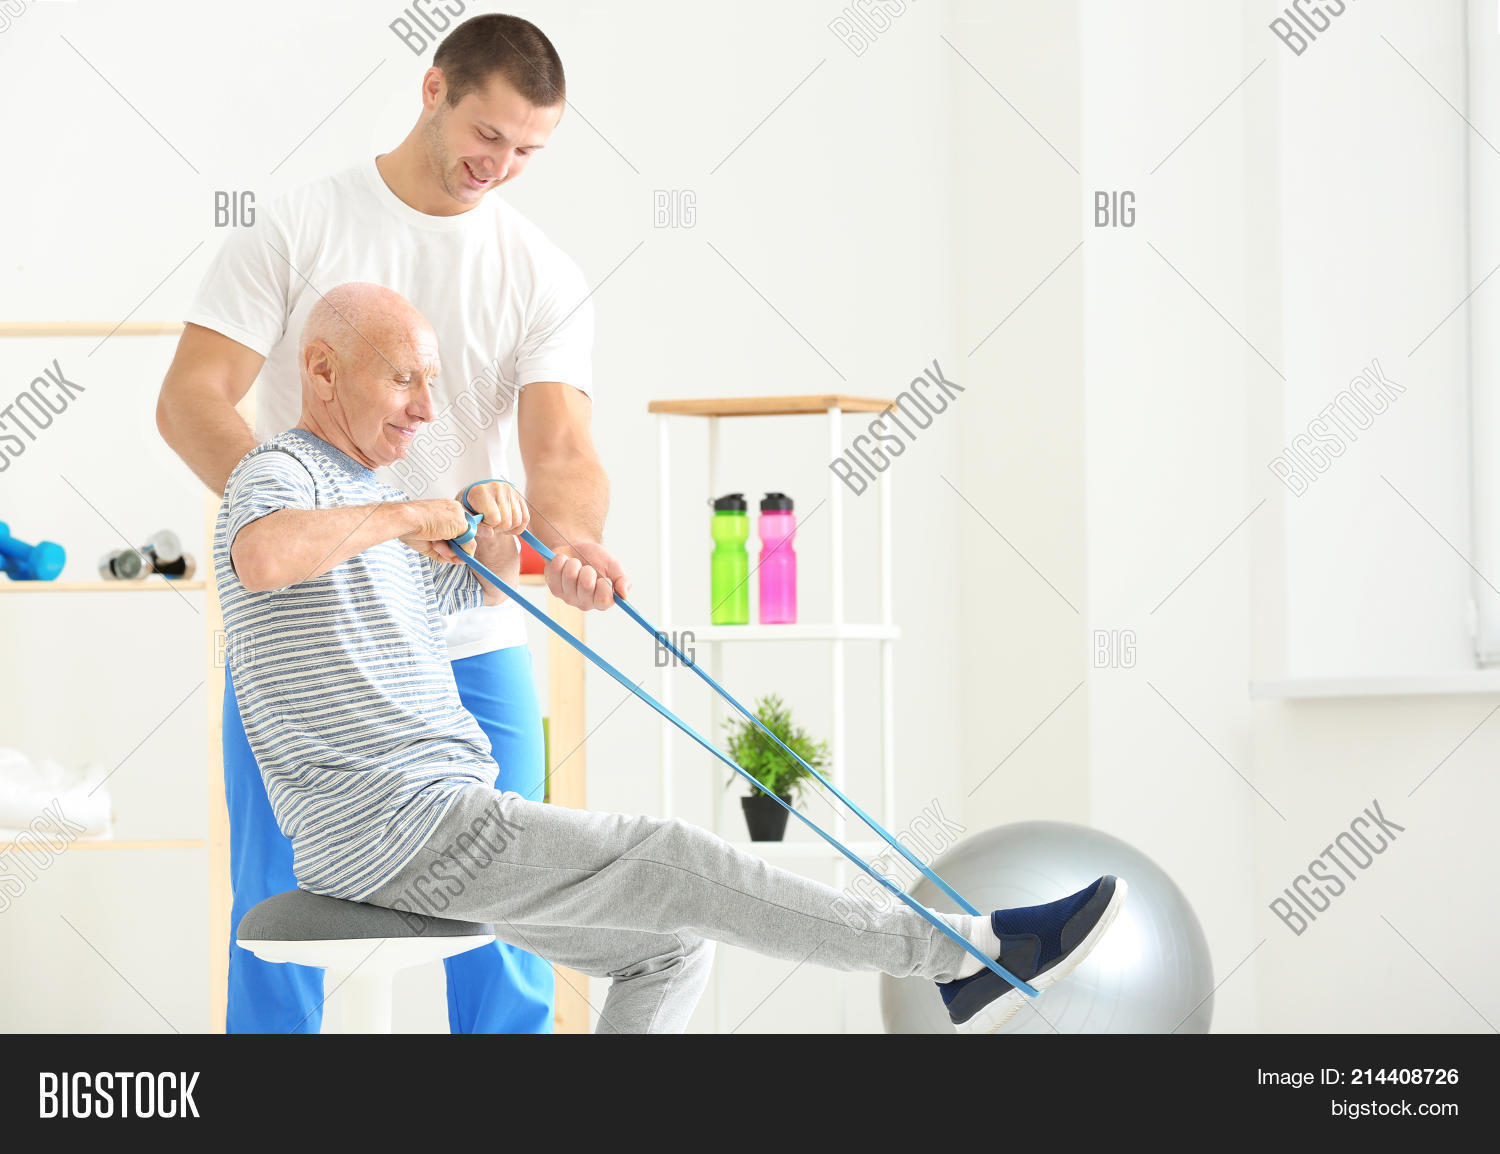 Supervision of an elderly person 87